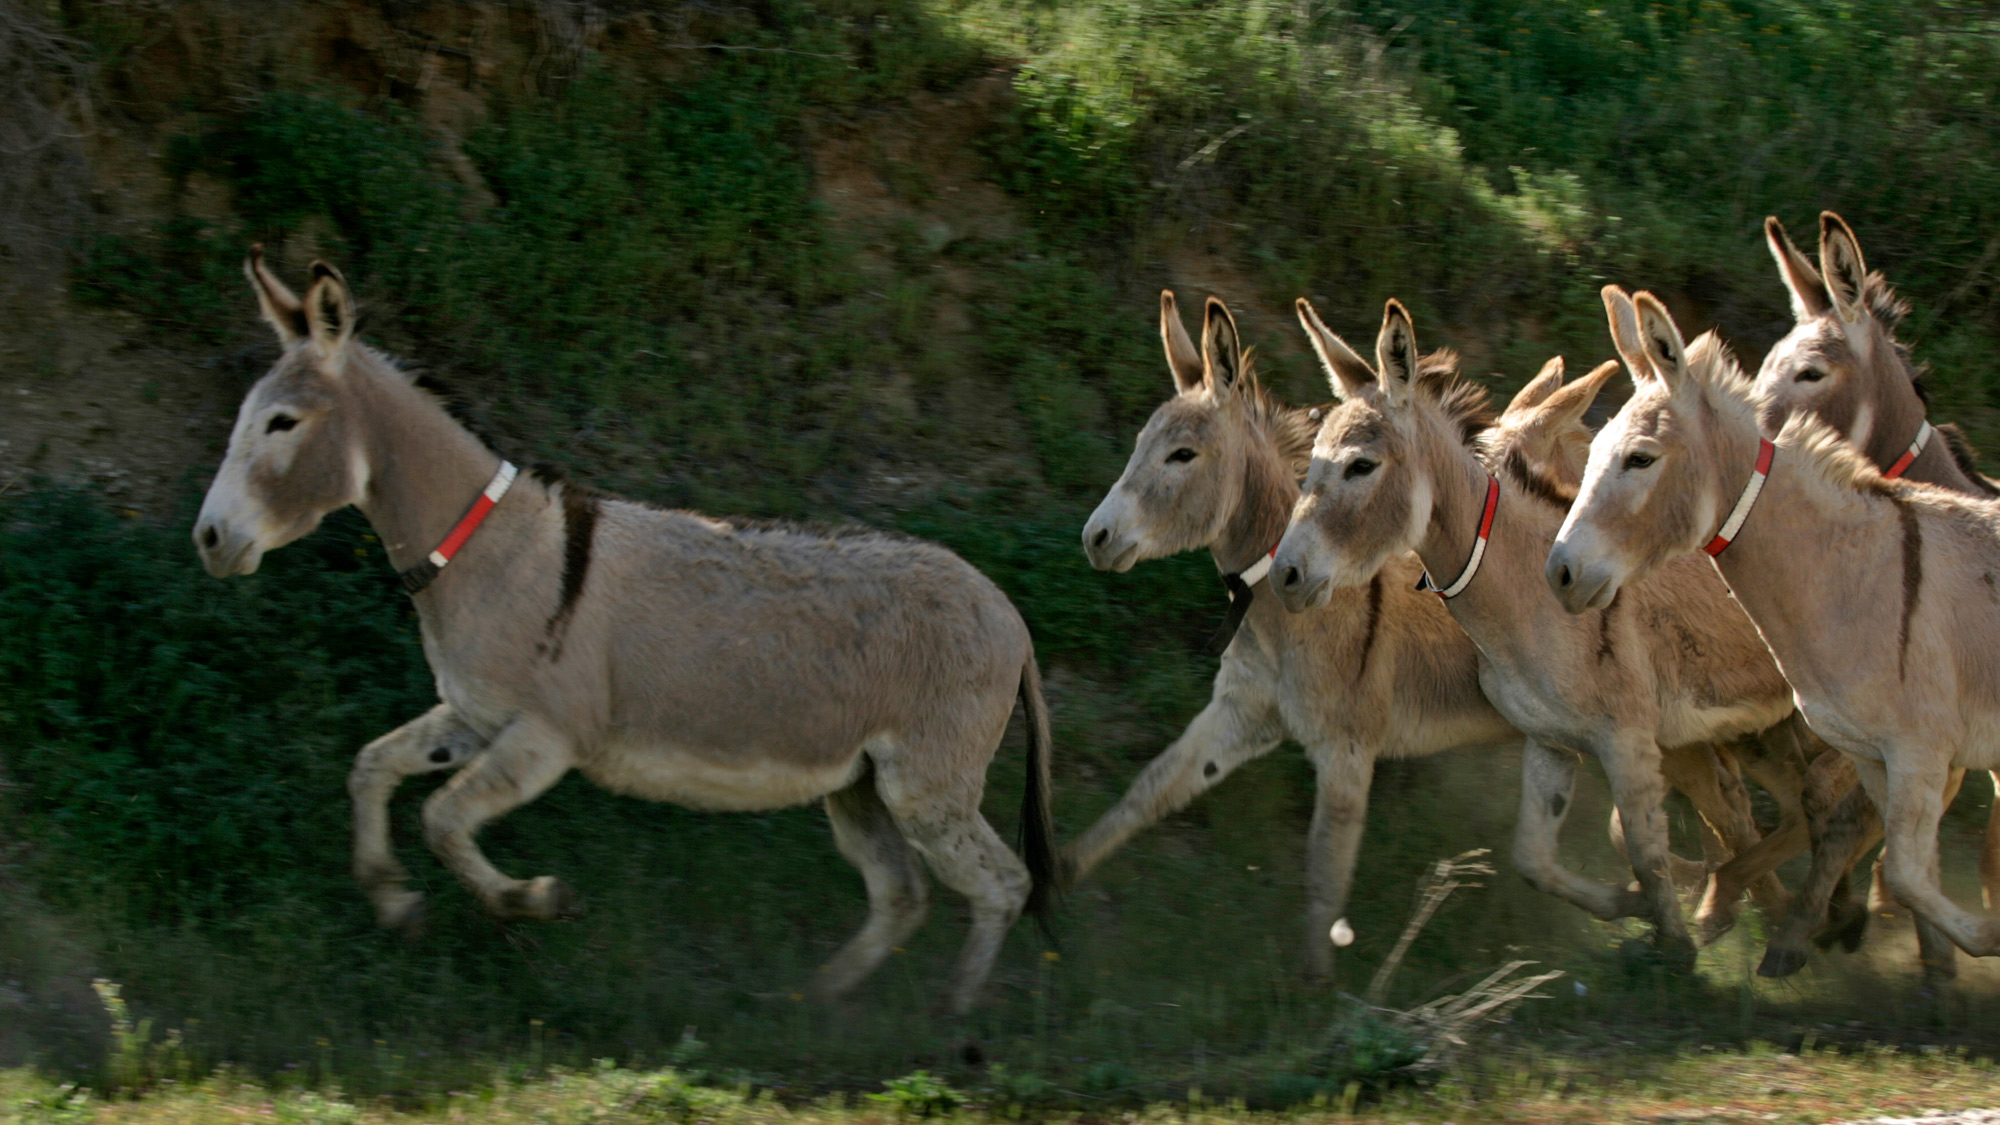 Wild burros gallop out of a corral after being collared with reflective material to make them more visible on highways.